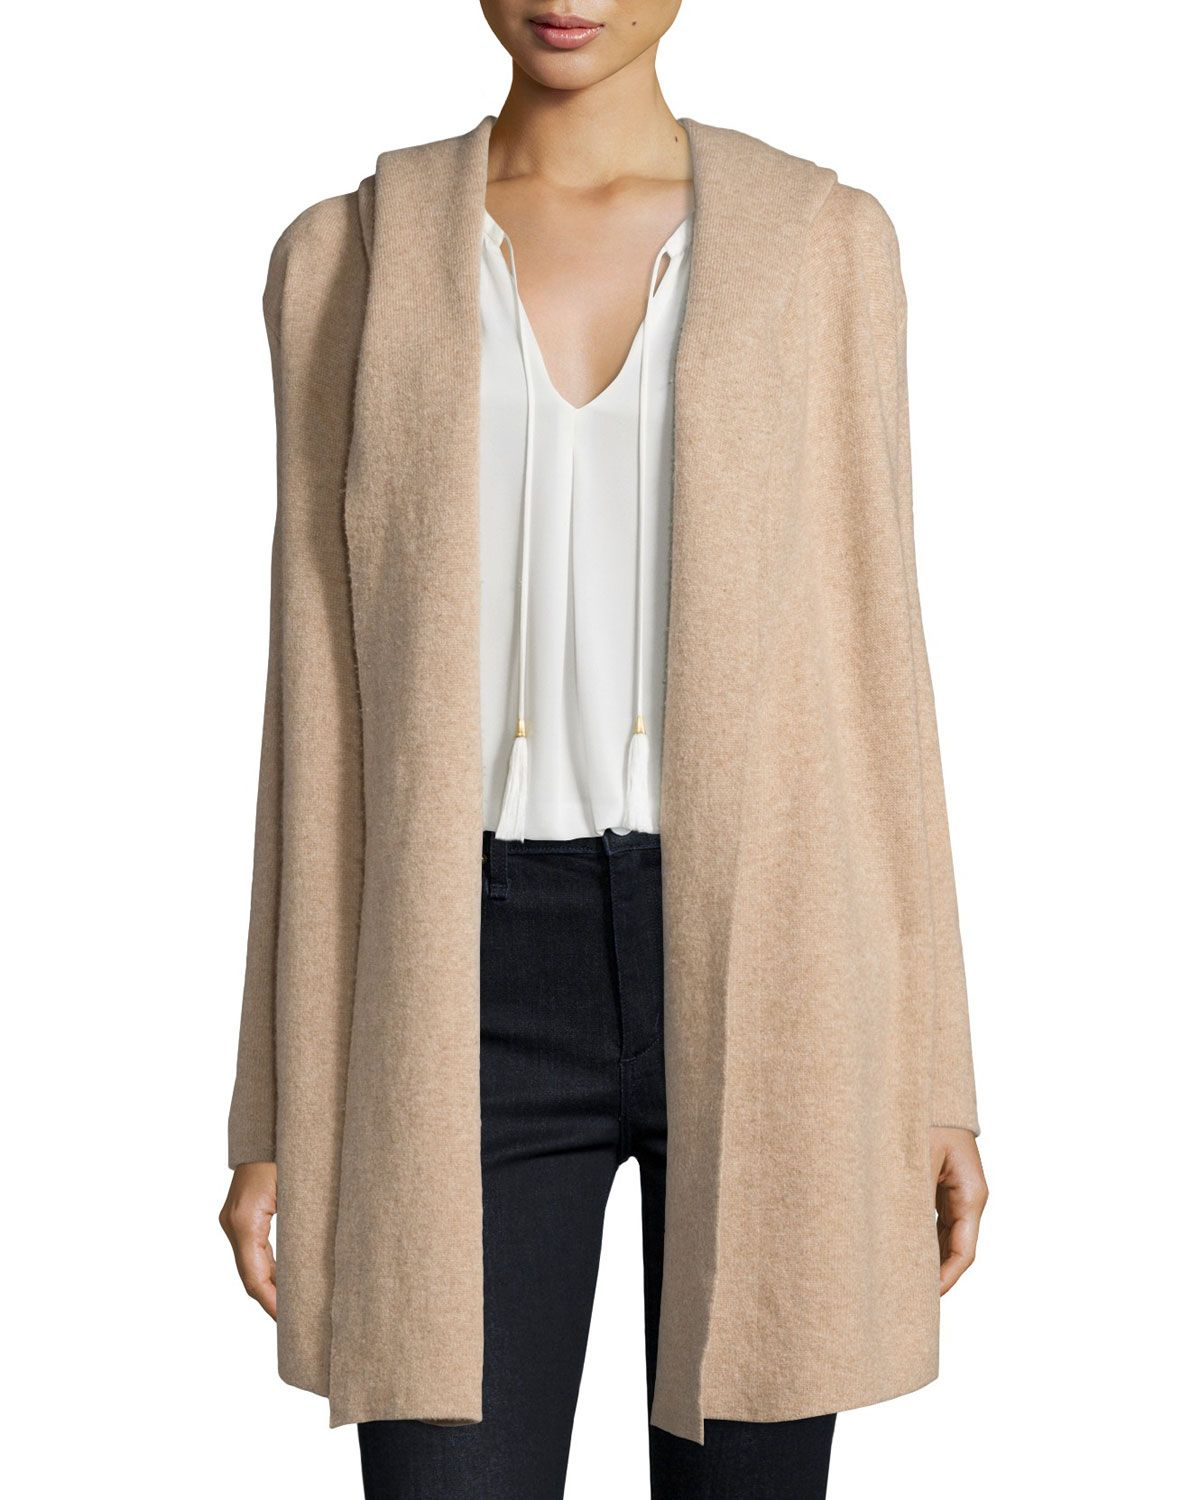 Gredan Long Hooded Sweater, Coffee/Cream | Products | Pinterest ...